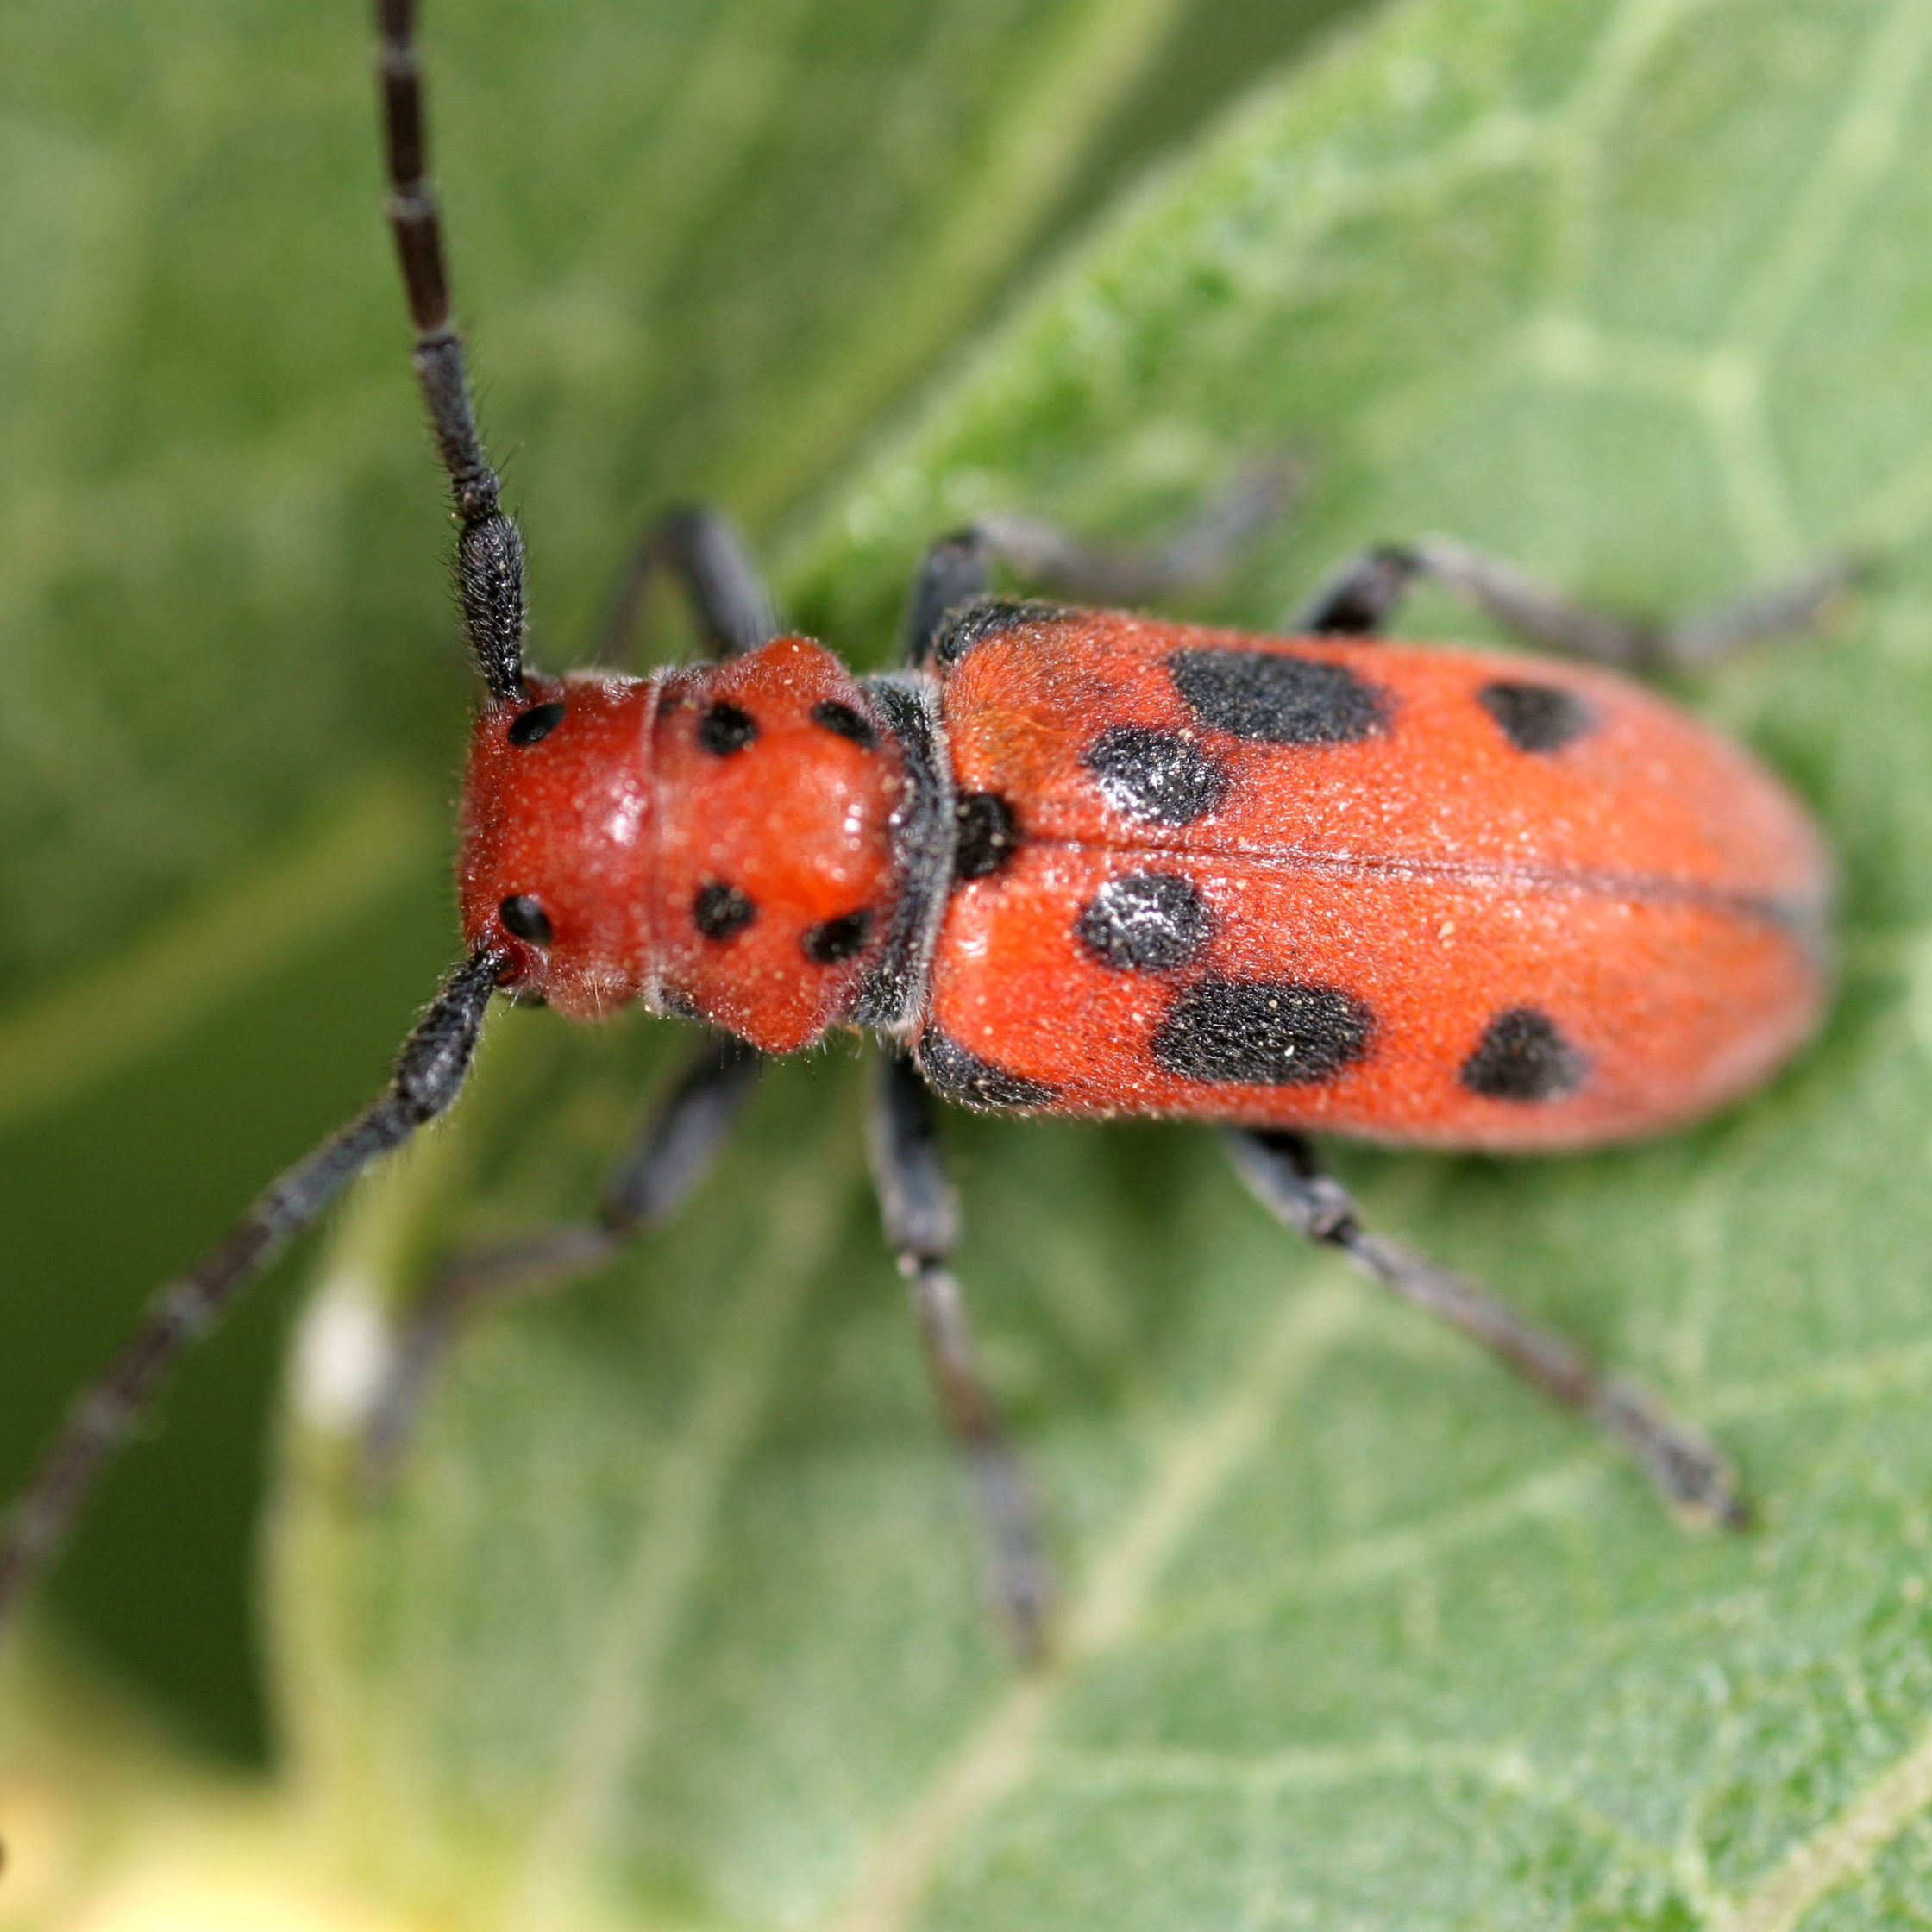 Red+milkweed+beetle+1.jpg